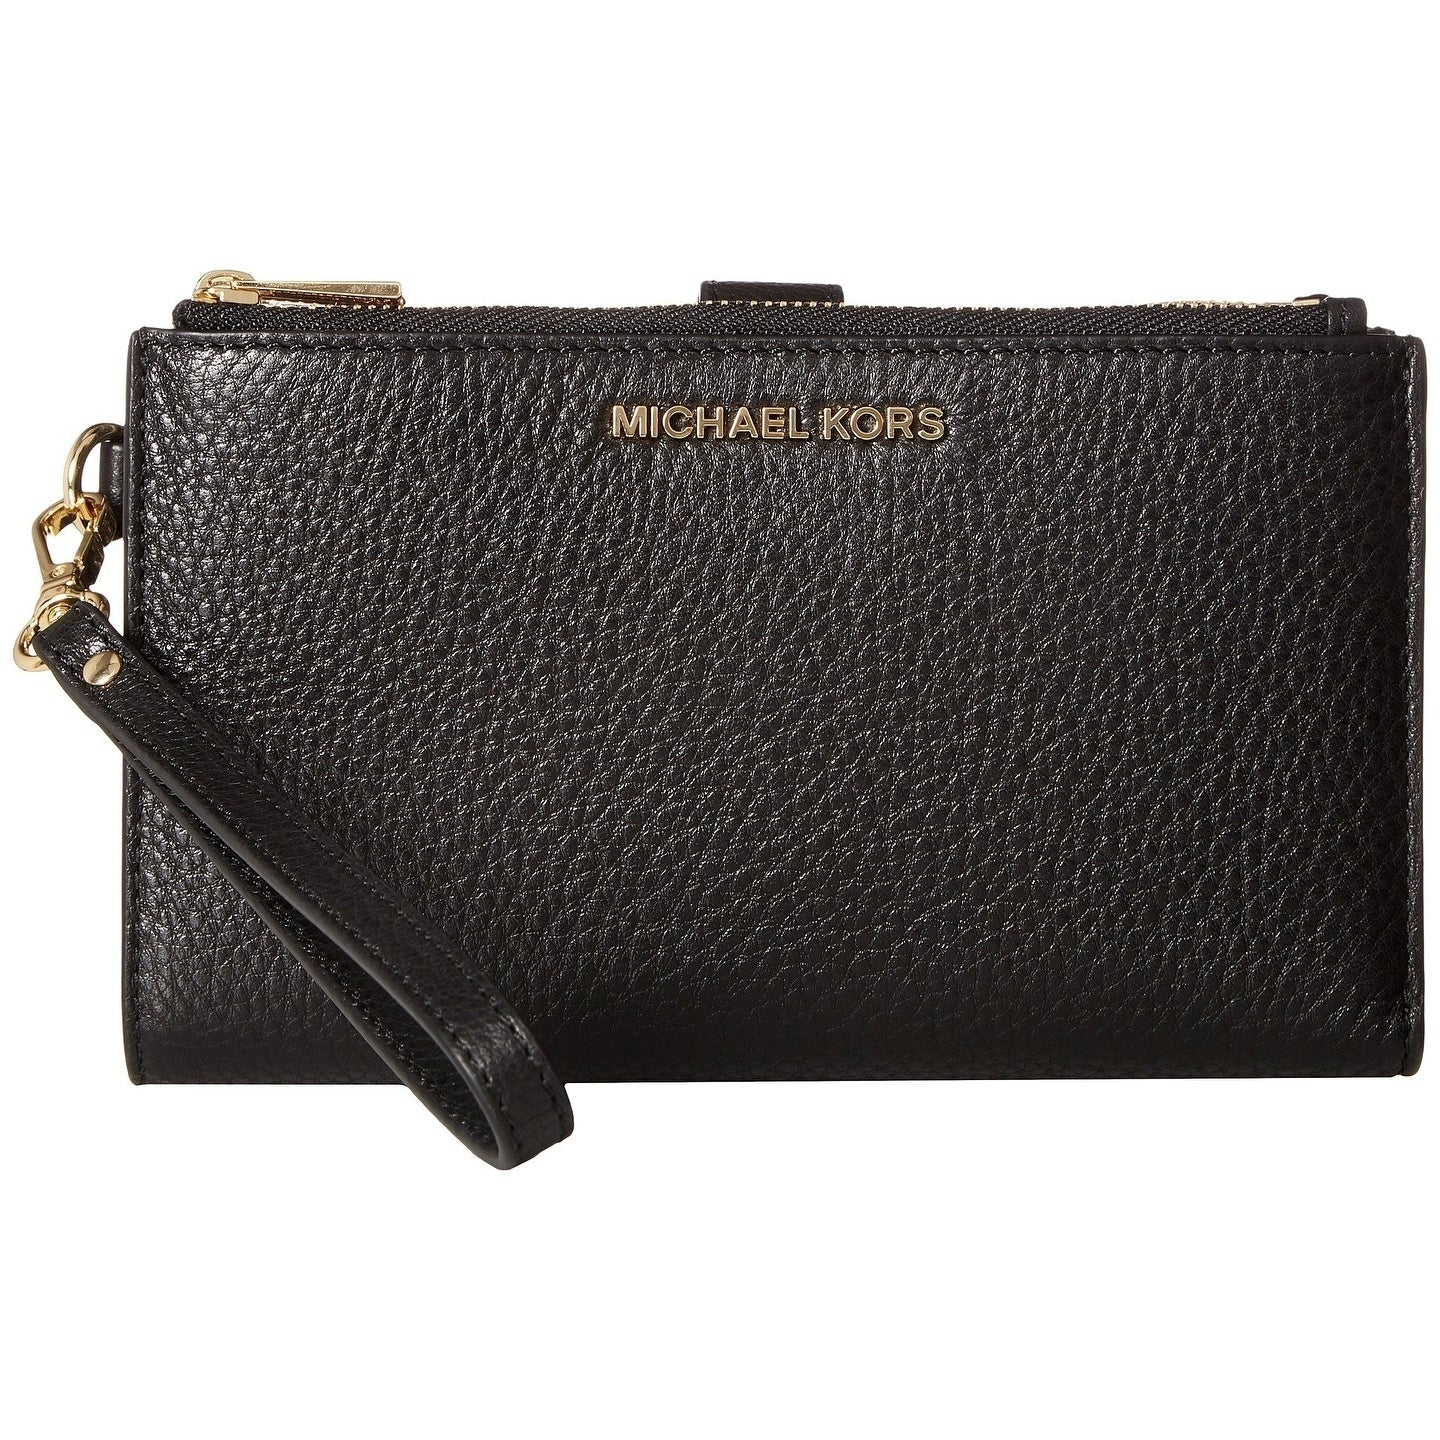 d9ecdbbf672b Shop MICHAEL Michael Kors Adele Double Zip iPhone 7 Plus Wristlet Black -  Free Shipping Today - Overstock - 25463849